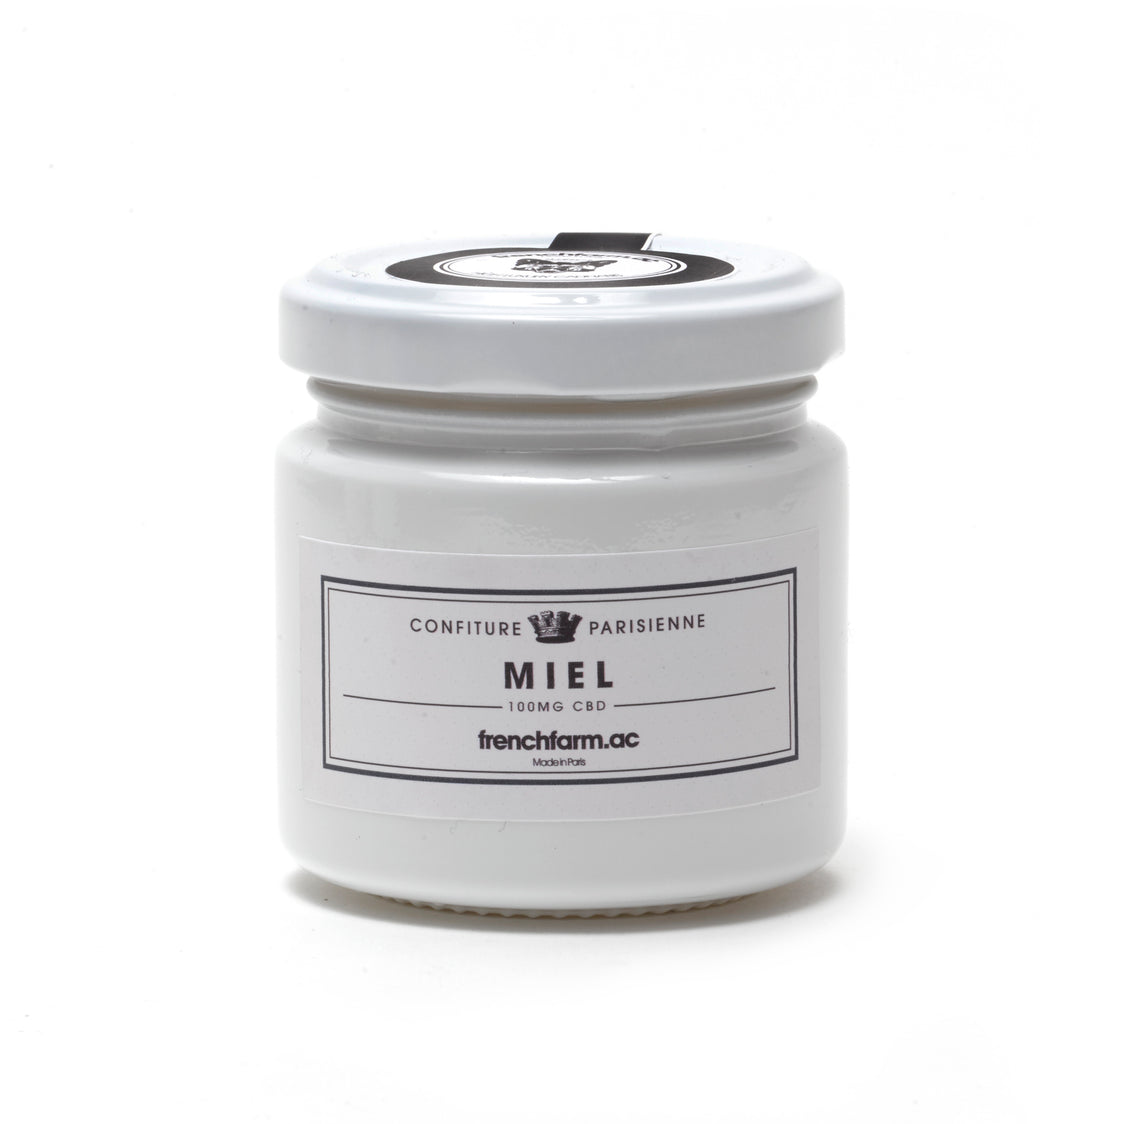 COLLECTION CBD - MIEL - collaboration frenchfarm.ac